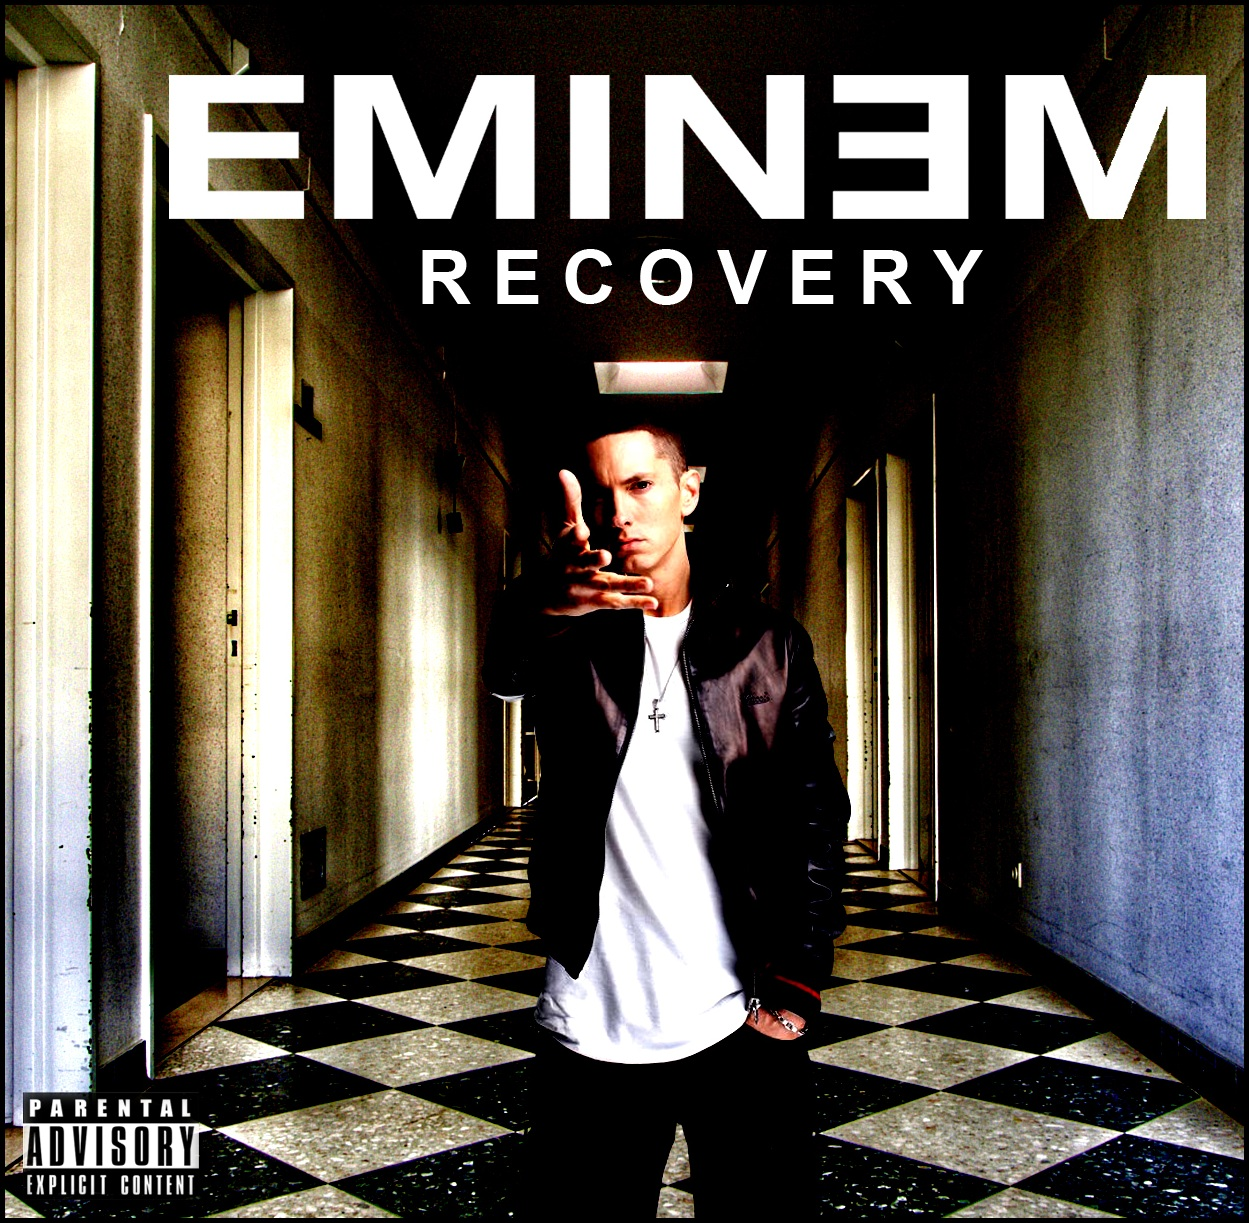 http://3.bp.blogspot.com/-OUlNocIOTco/TtsSttil-5I/AAAAAAAAFSE/Q2-aYPbG9_0/s1600/Eminem+Recovery%252C+Eminem+-+Space+Bound+Lyrics%252C+Mp3+%2526+Video+Song+Download+Free+-+Lyricspassion.blogspot.com.jpg